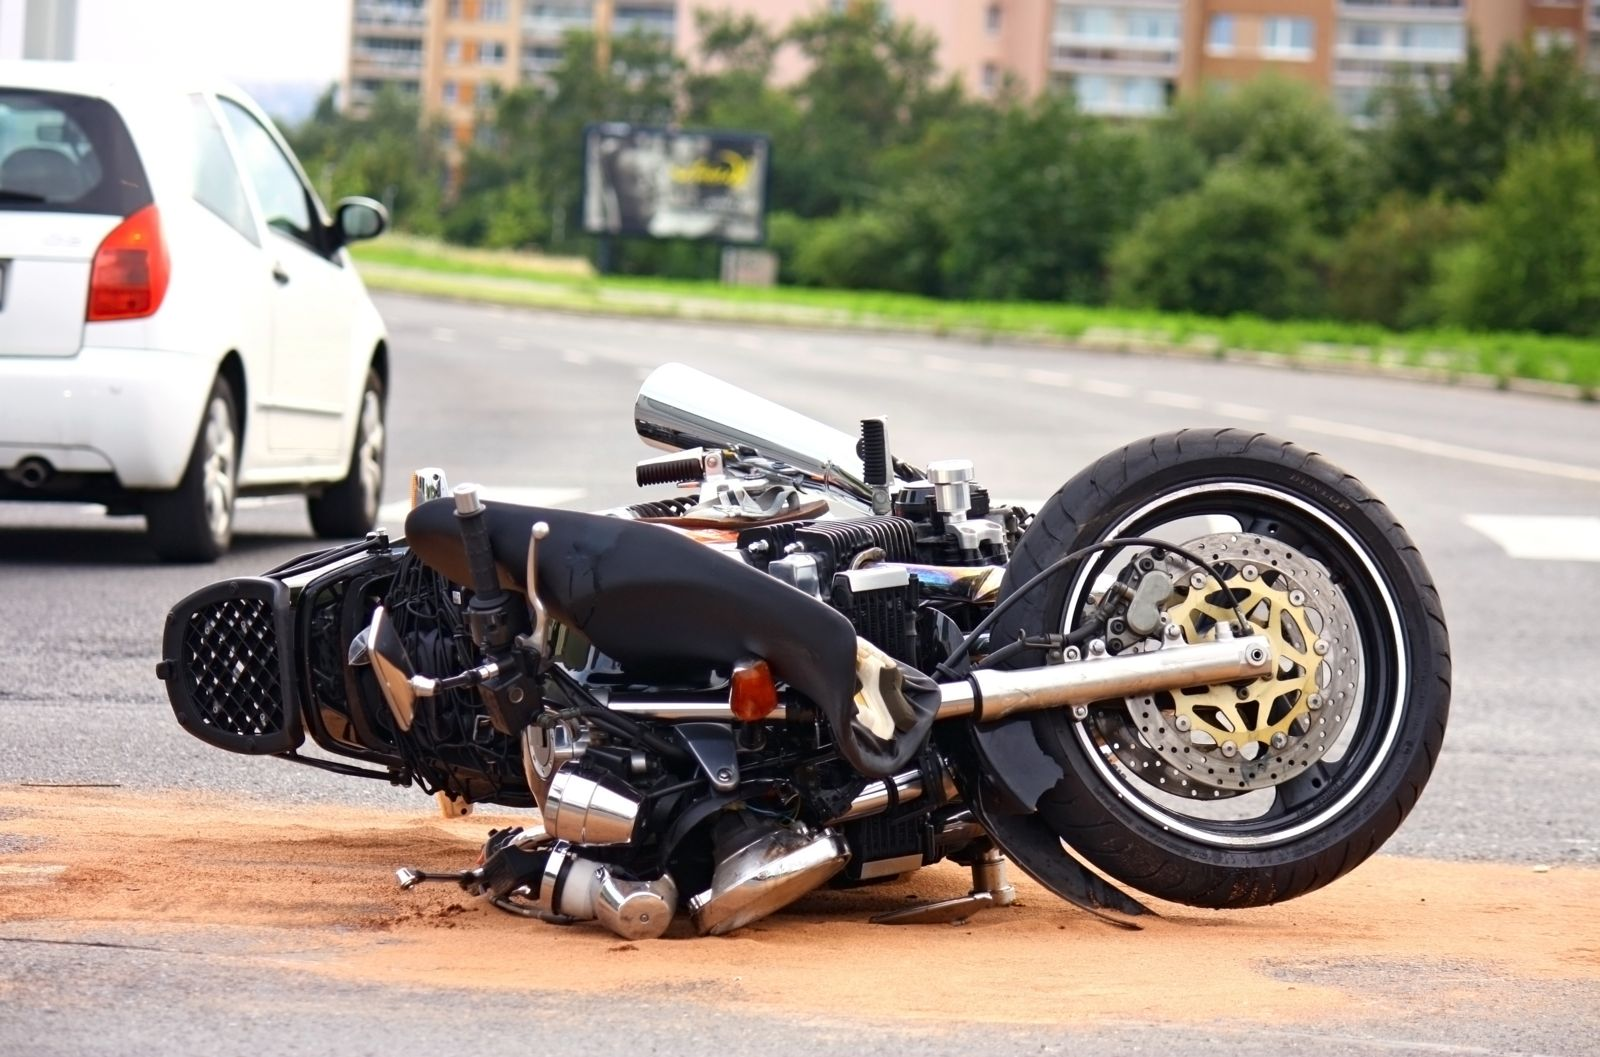 Damaged Motorcycle on Road After Accident